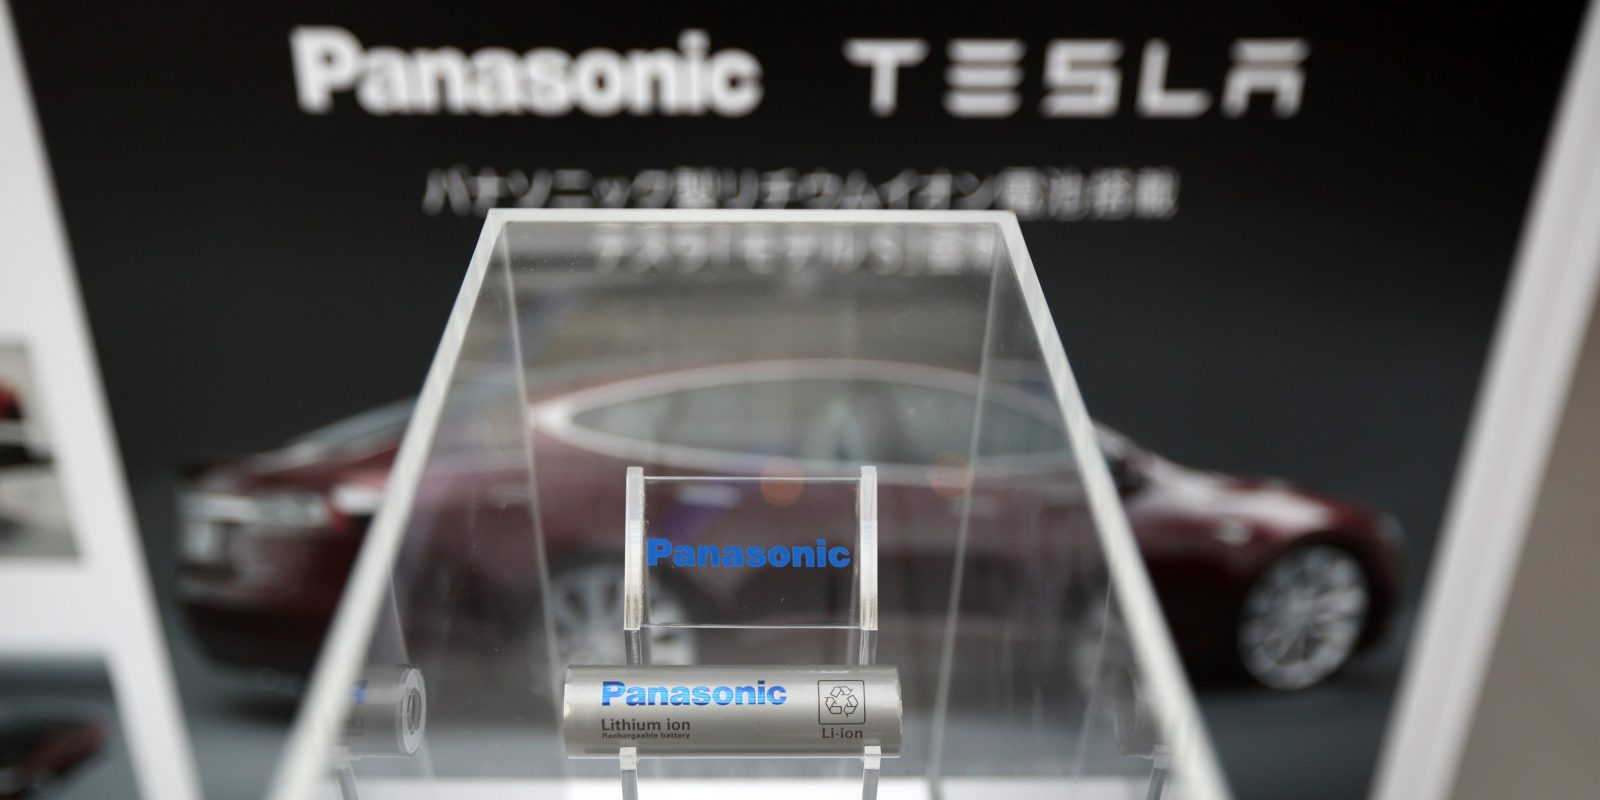 Tesla battery supplier Panasonic is considering switching 18650 cell production to 2170 cells